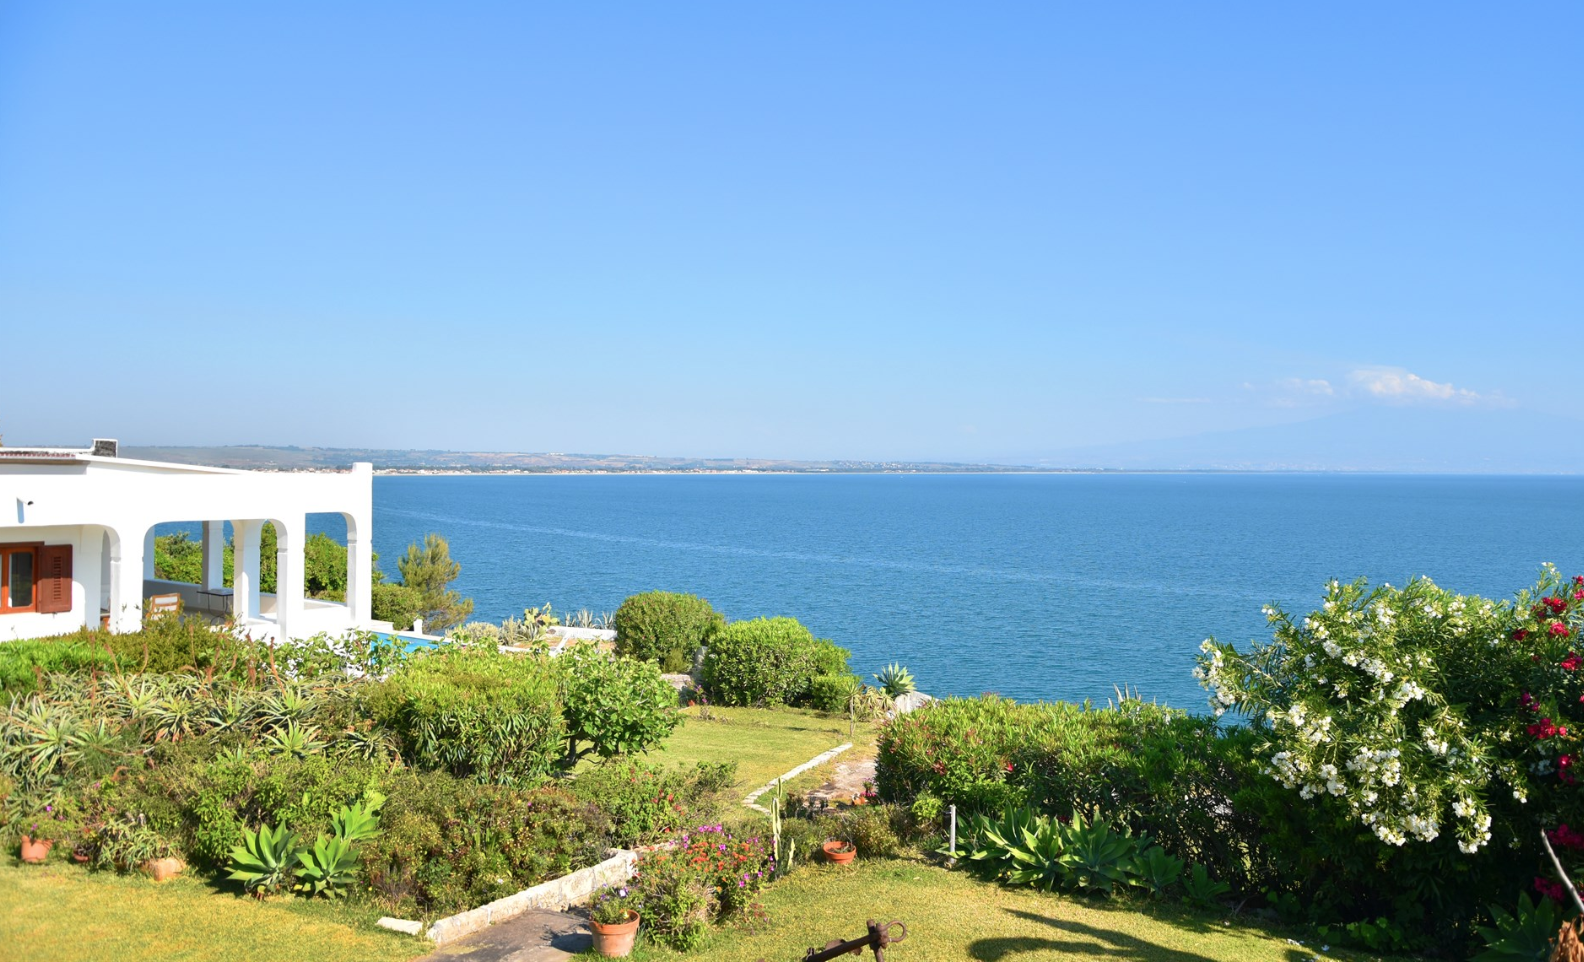 clifftop view from our villa